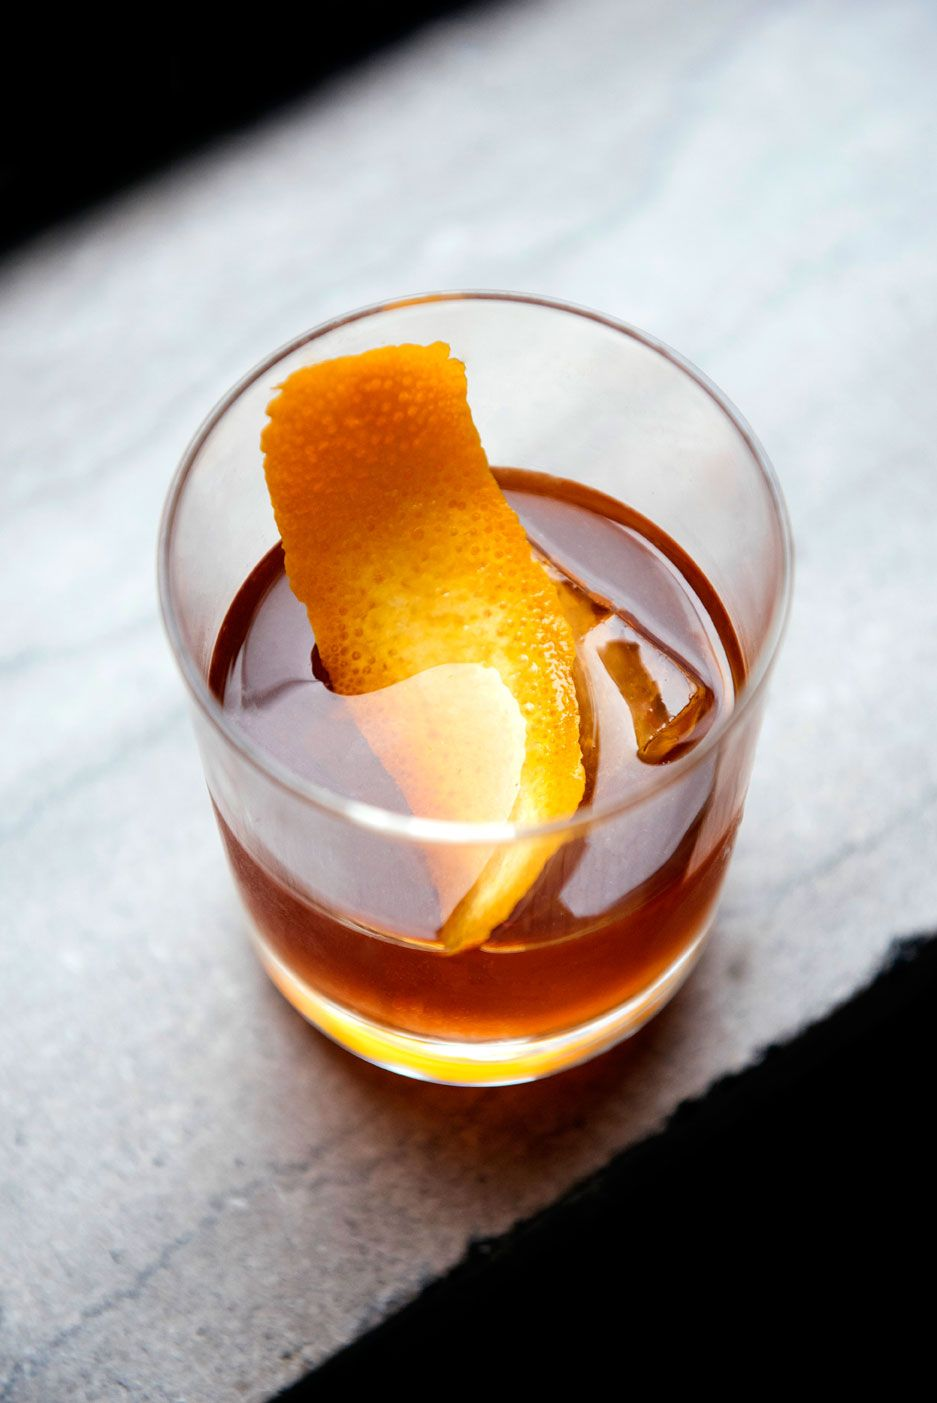 The French Connection Lillet Blanc Cognac Dash Of Orange Bitters Hint Of Honey Syrup Cravings Cocktail Recipes Food